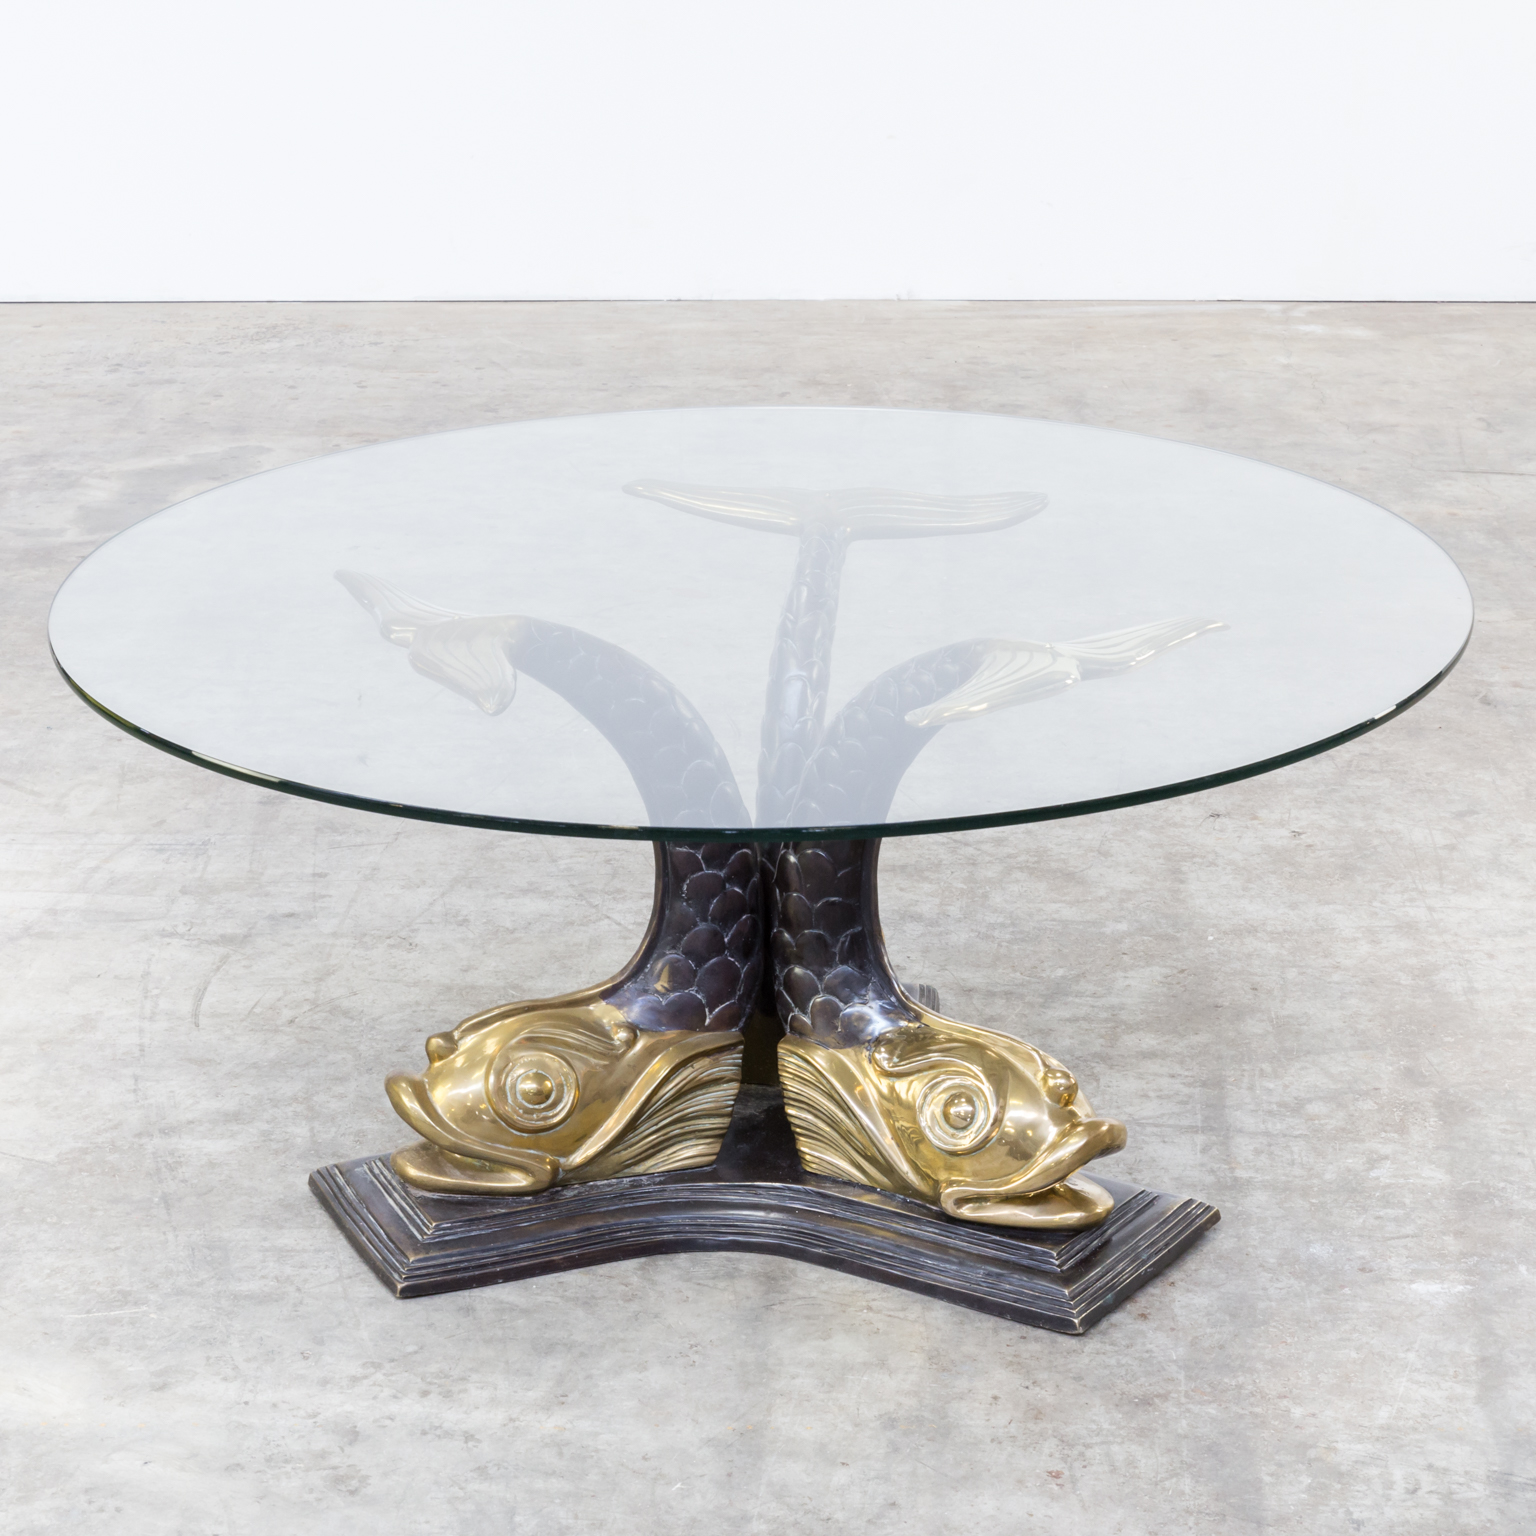 60s italian brass koi fish sculptural coffee table 105cm for 60s coffee table